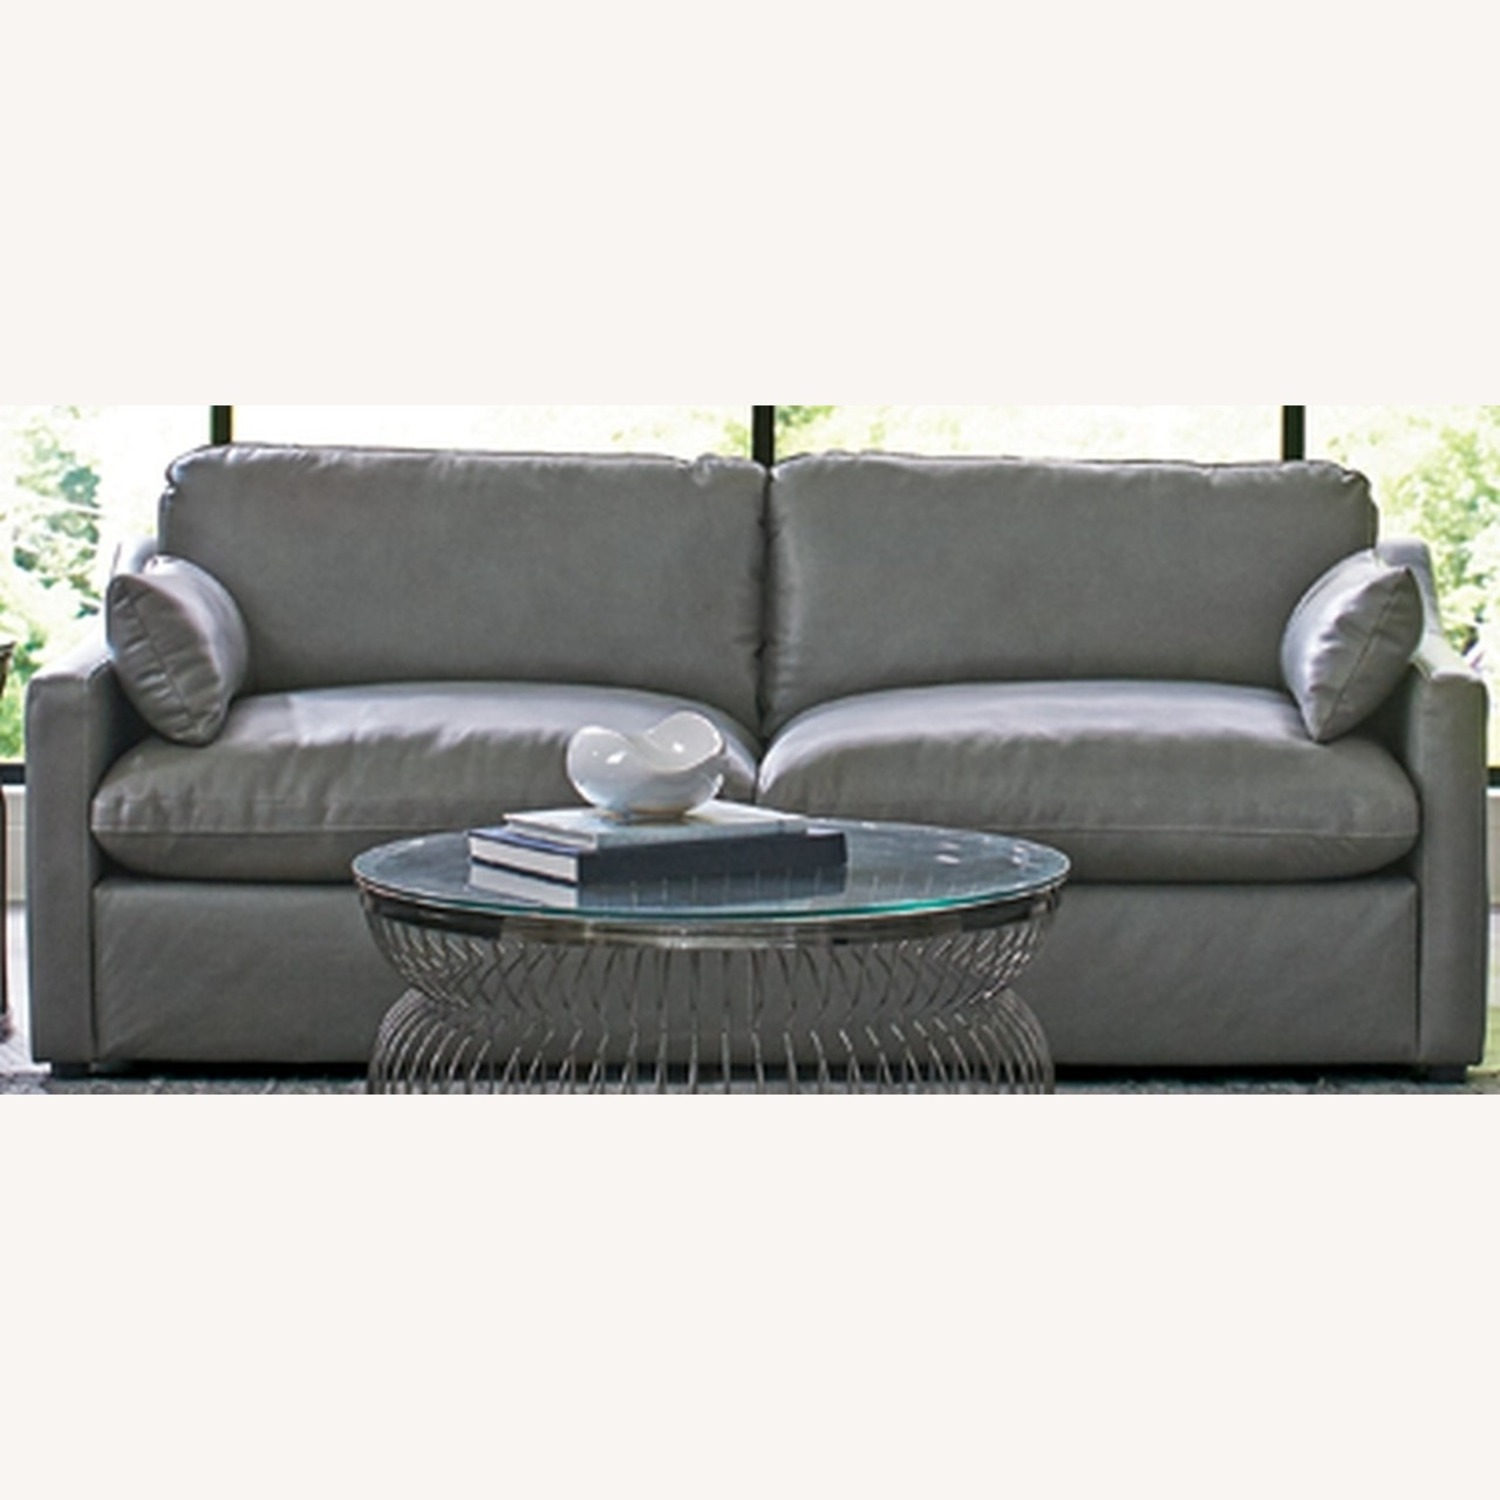 Sofa W/ Pillow-Like Seating In Grey Leather Finish - image-0